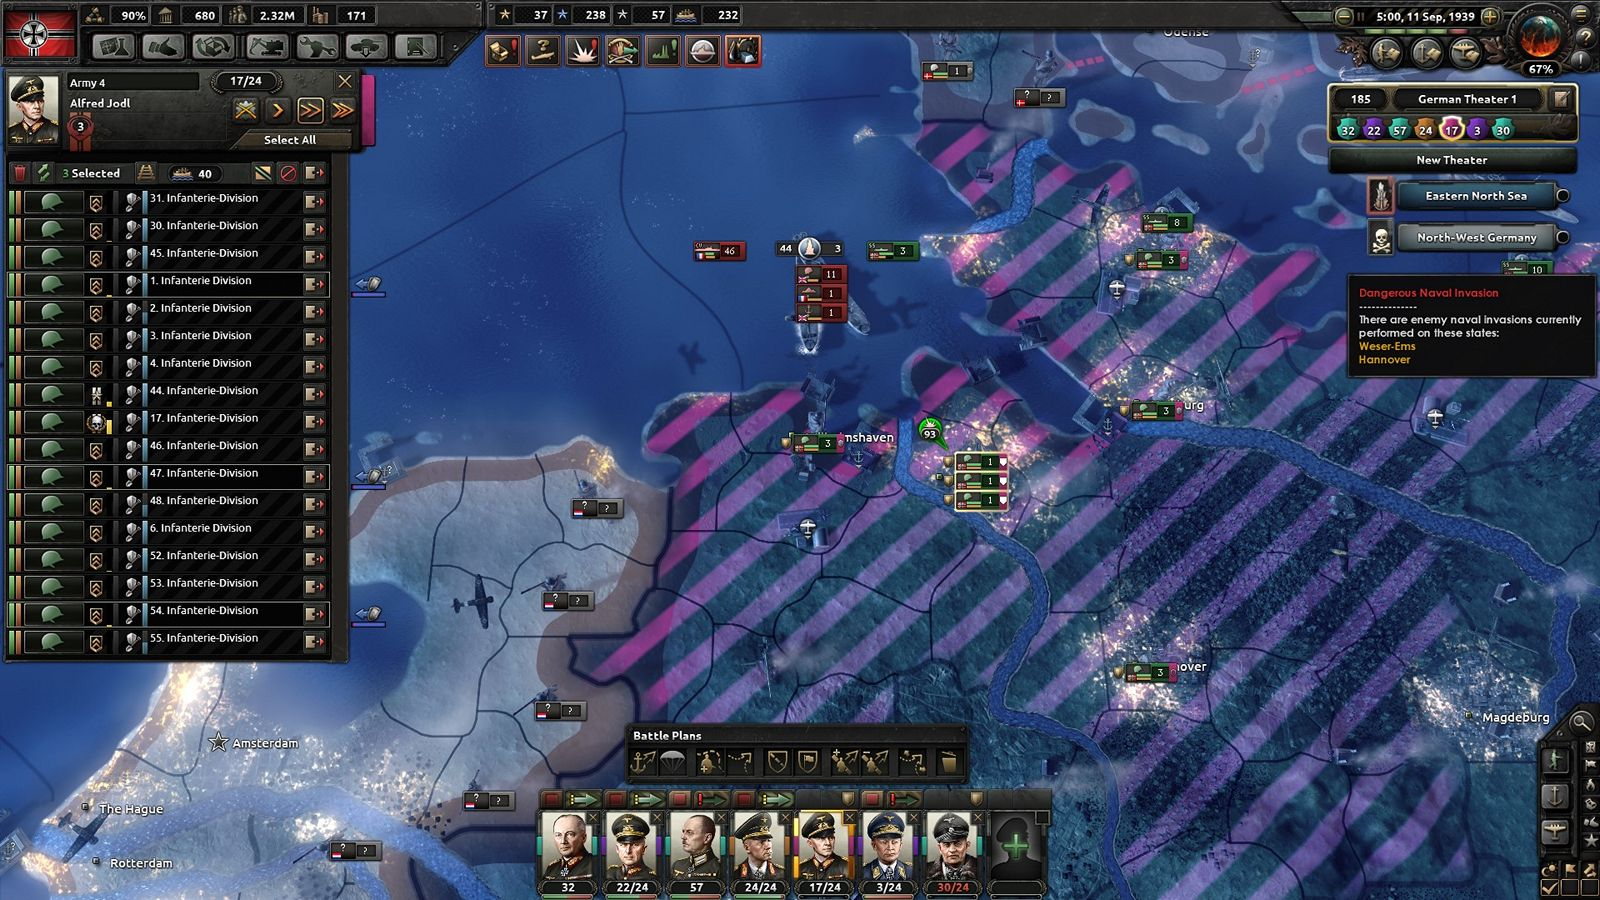 Patch 11 - Hearts of Iron 4 Wiki